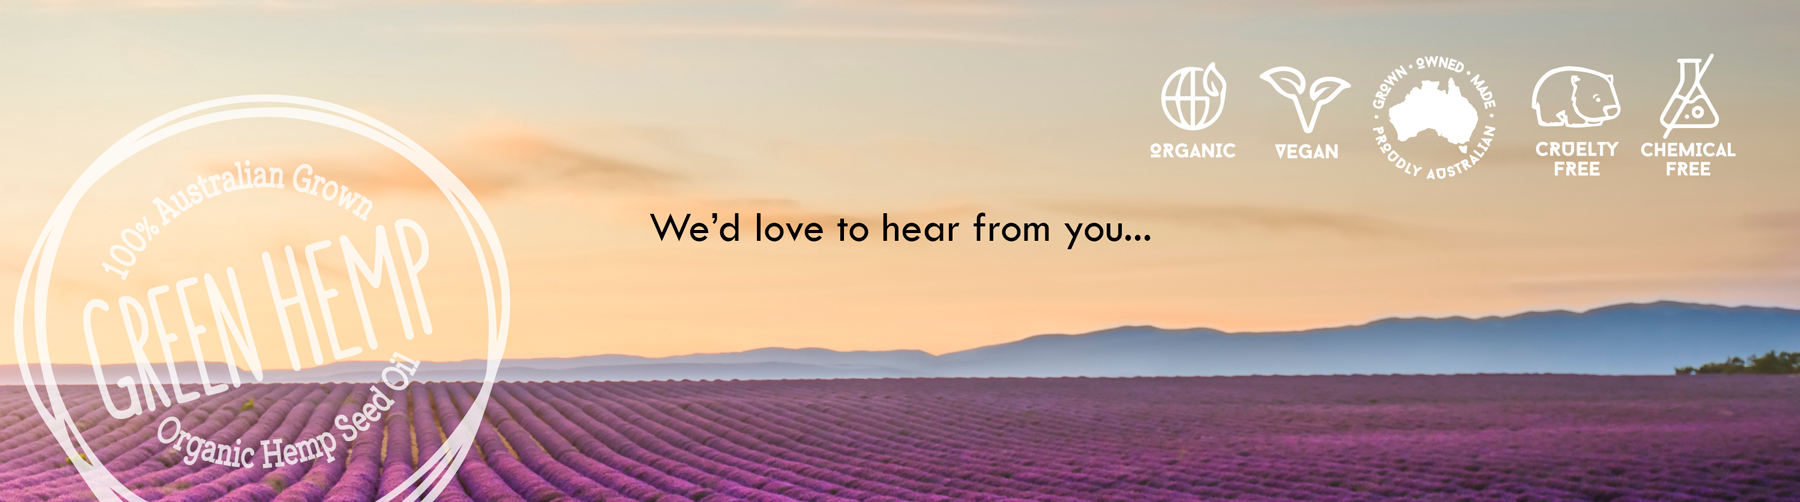 lavender fields contact us green hemp australia